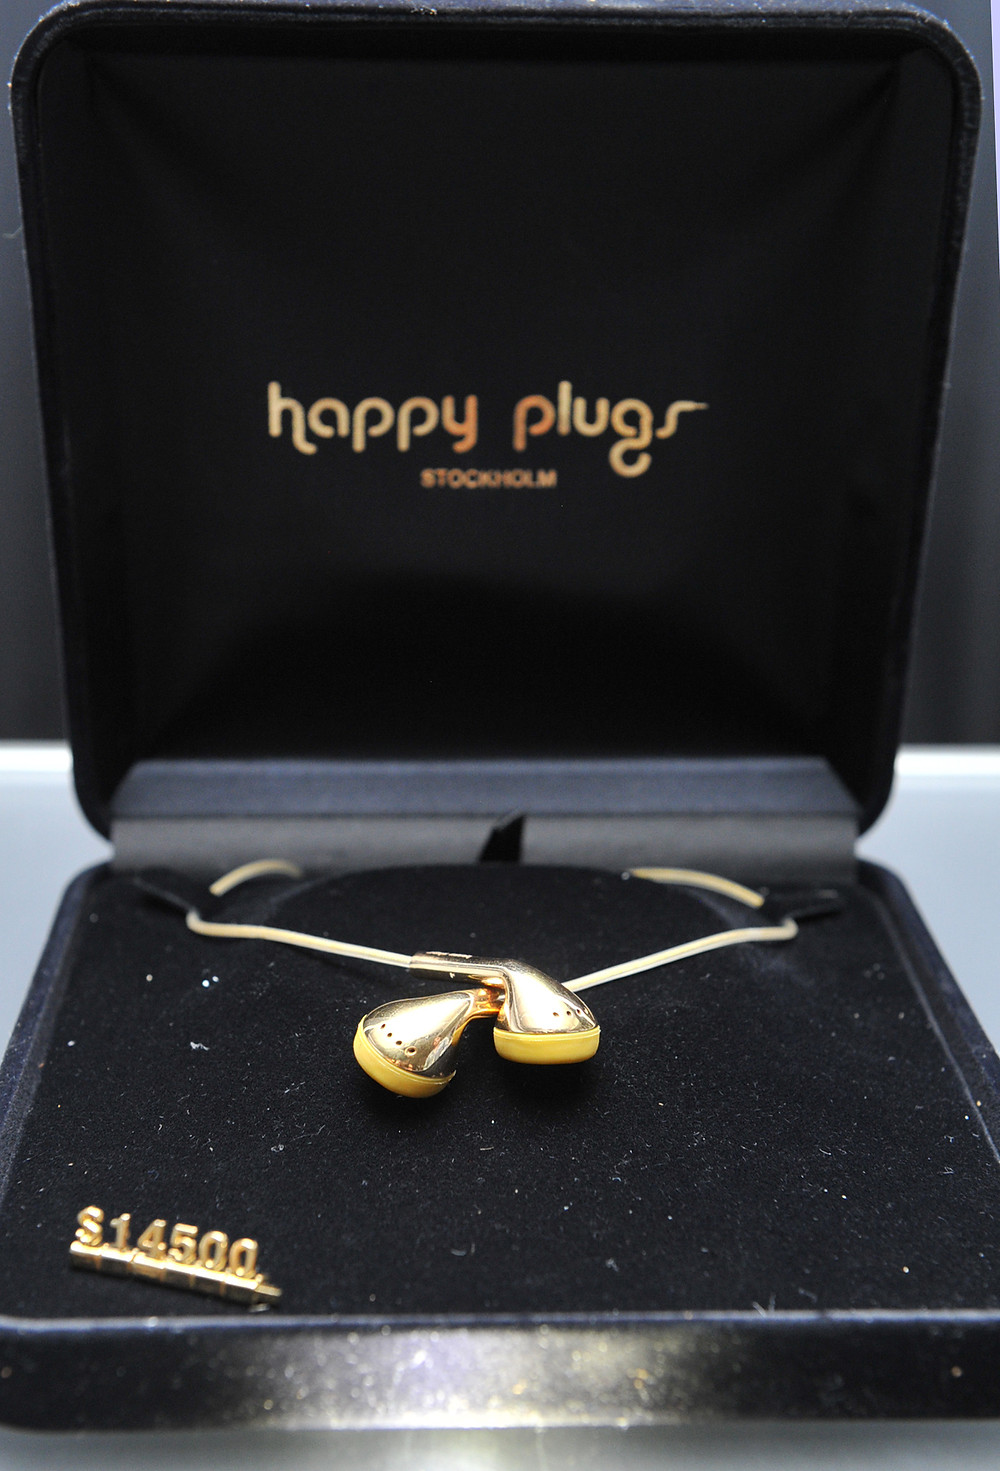 HAPPYPLUGS_030.jpg